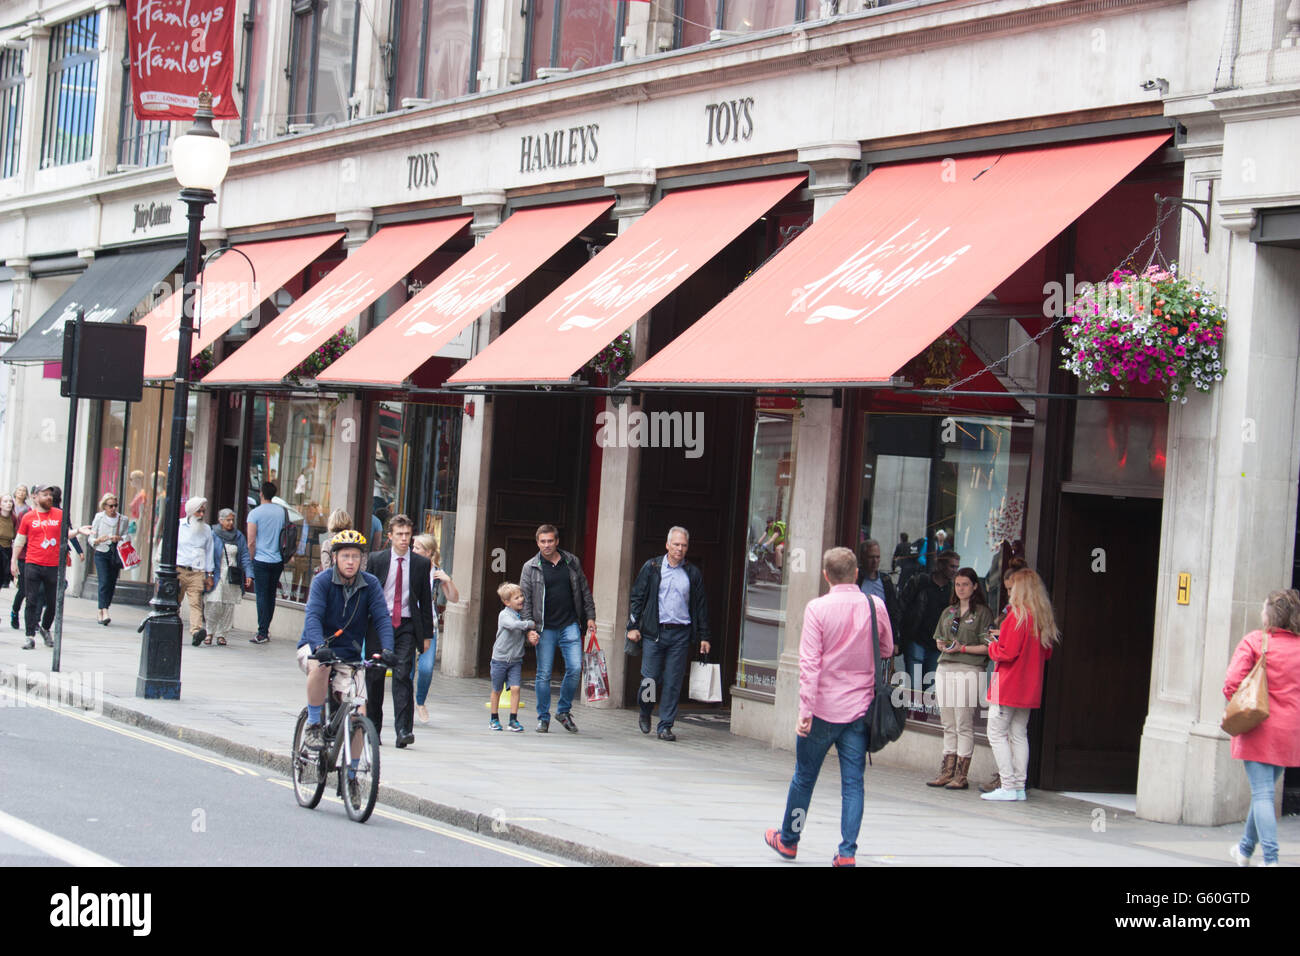 Hamleys toy shop Regent Street London UK - Stock Image